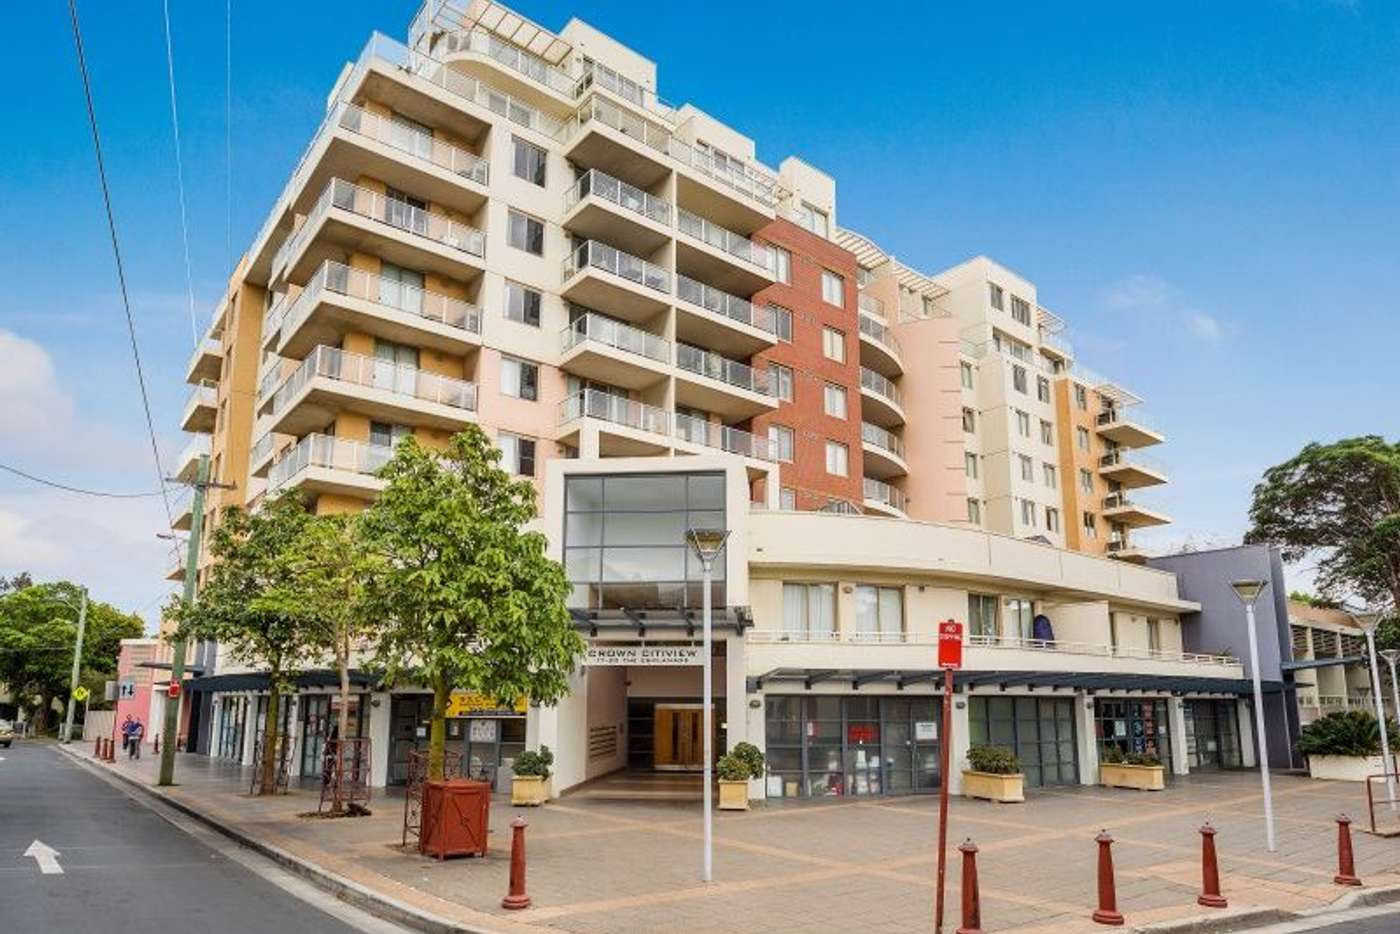 Main view of Homely apartment listing, 404/17-20 The Esplanade, Ashfield NSW 2131